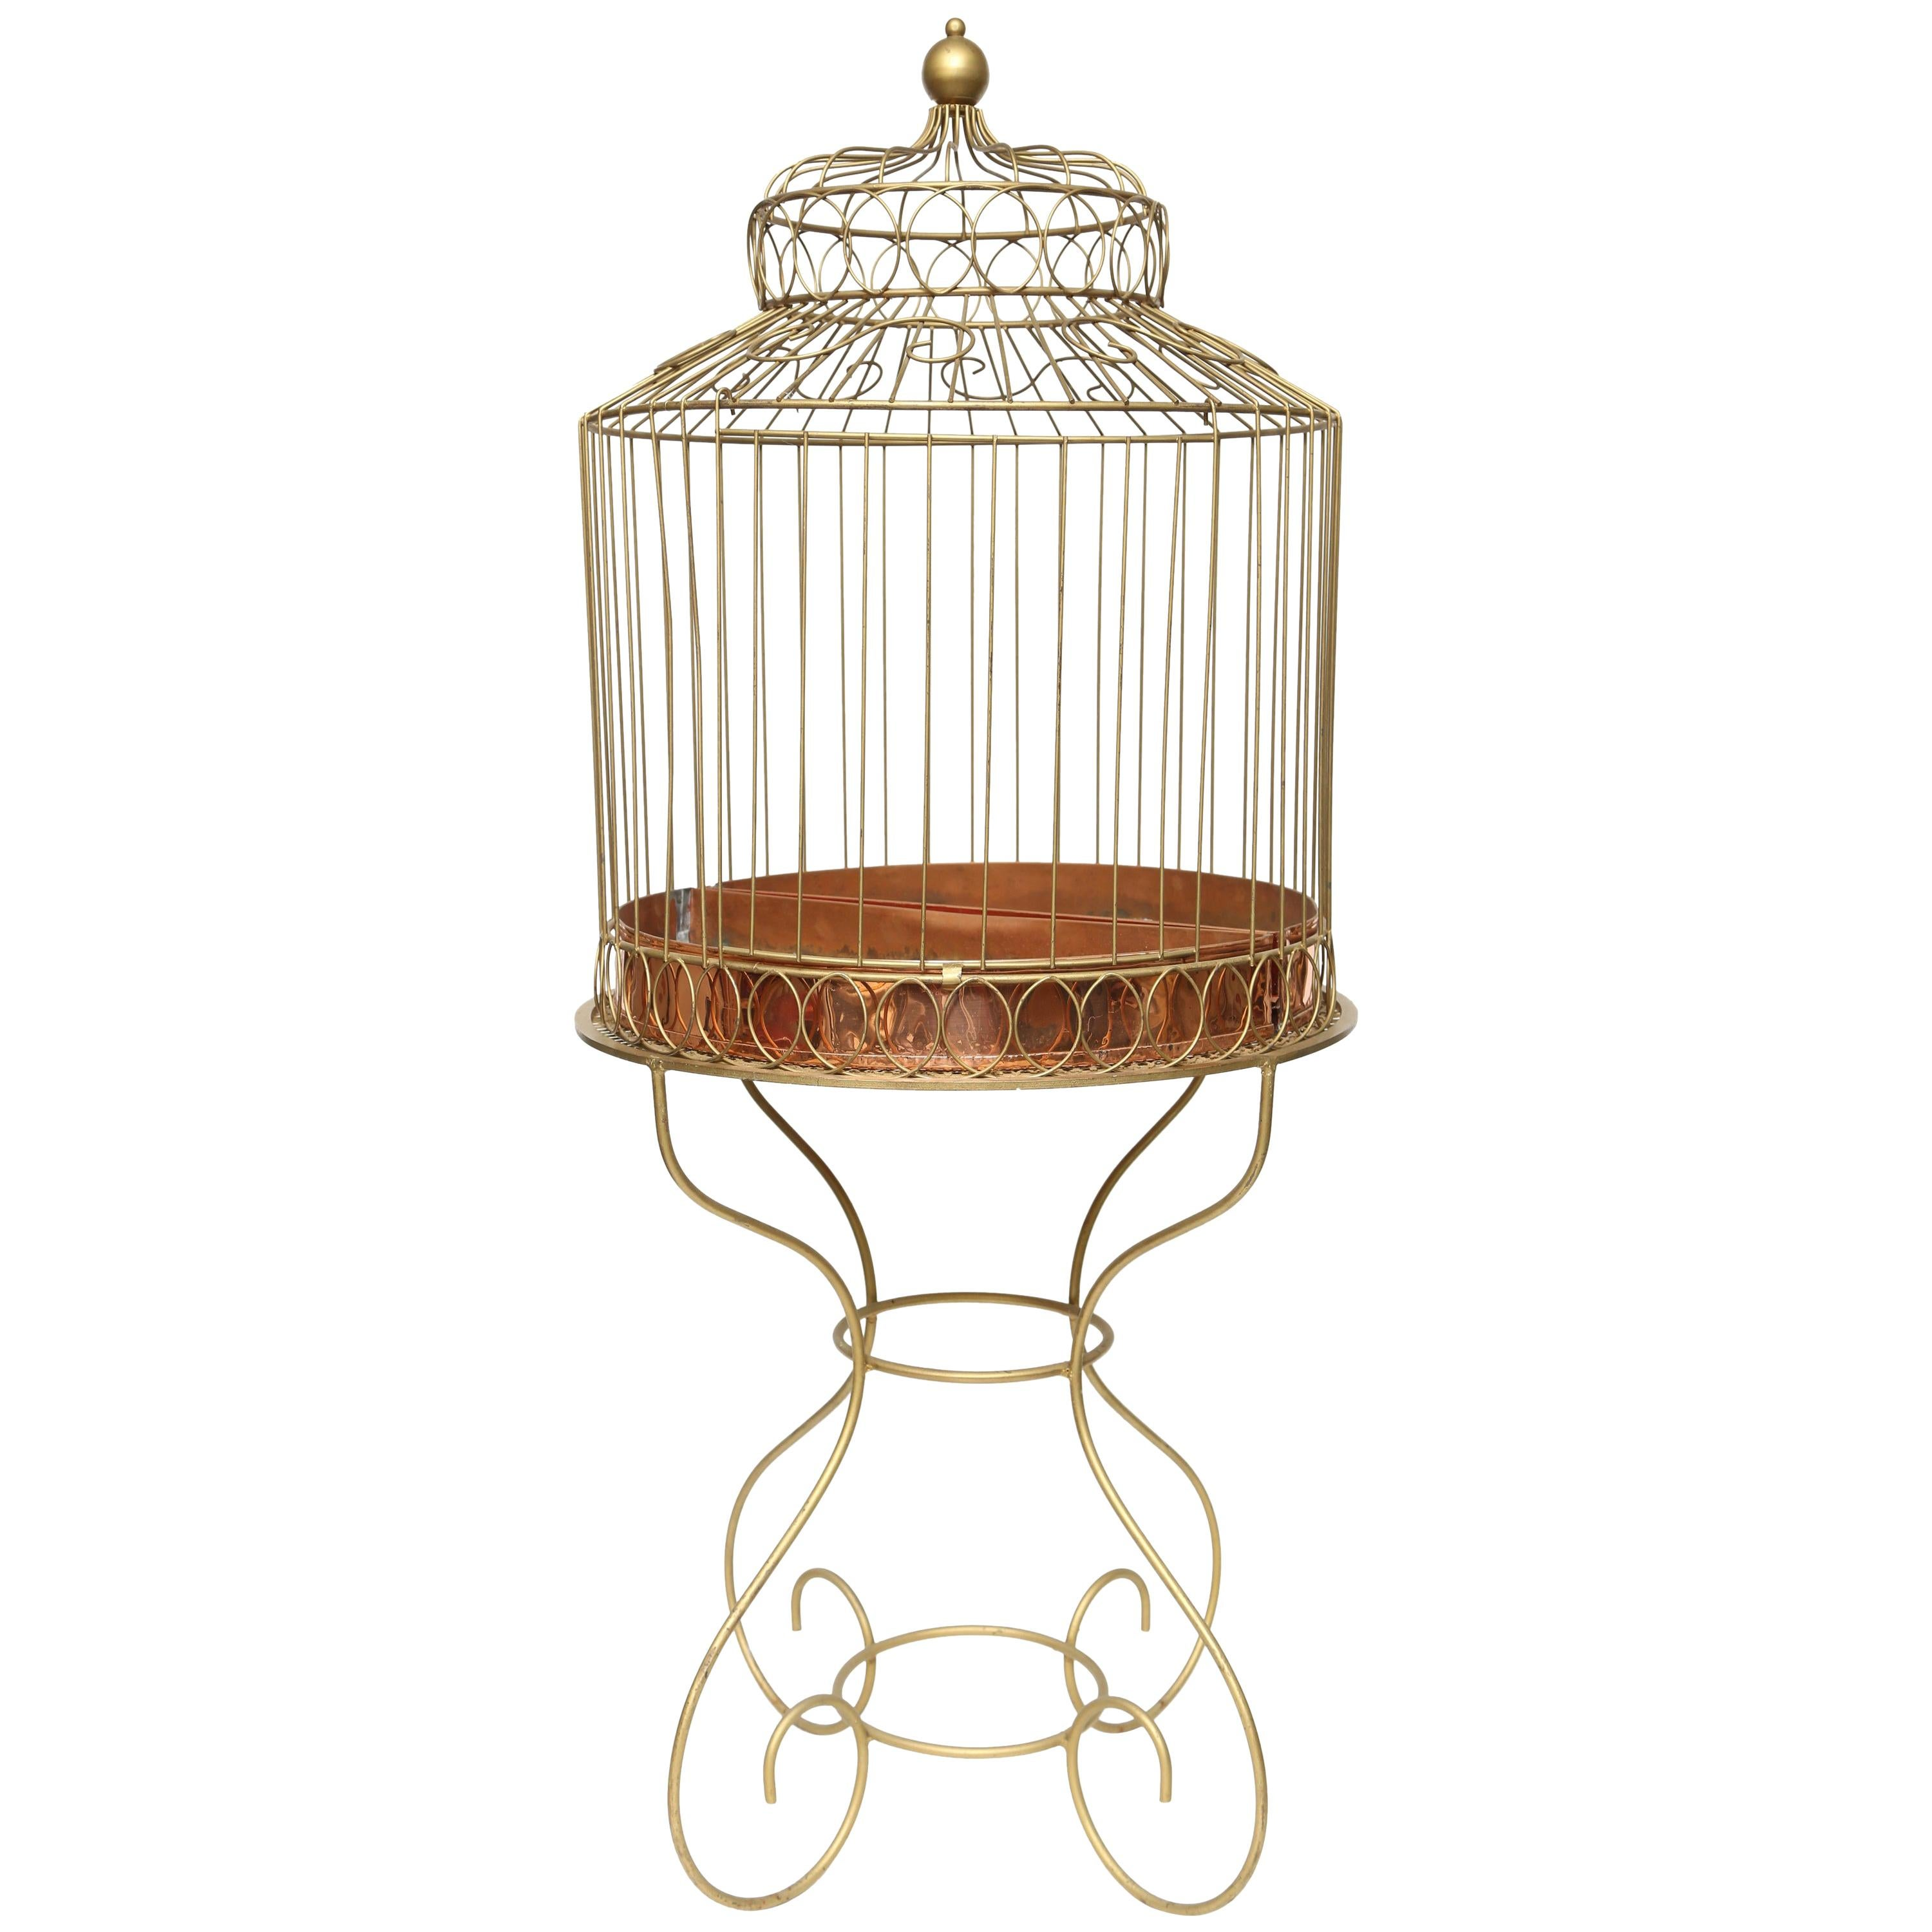 Mid-20th Century French Bird Cage on Stand-Gilt Metal and Copper